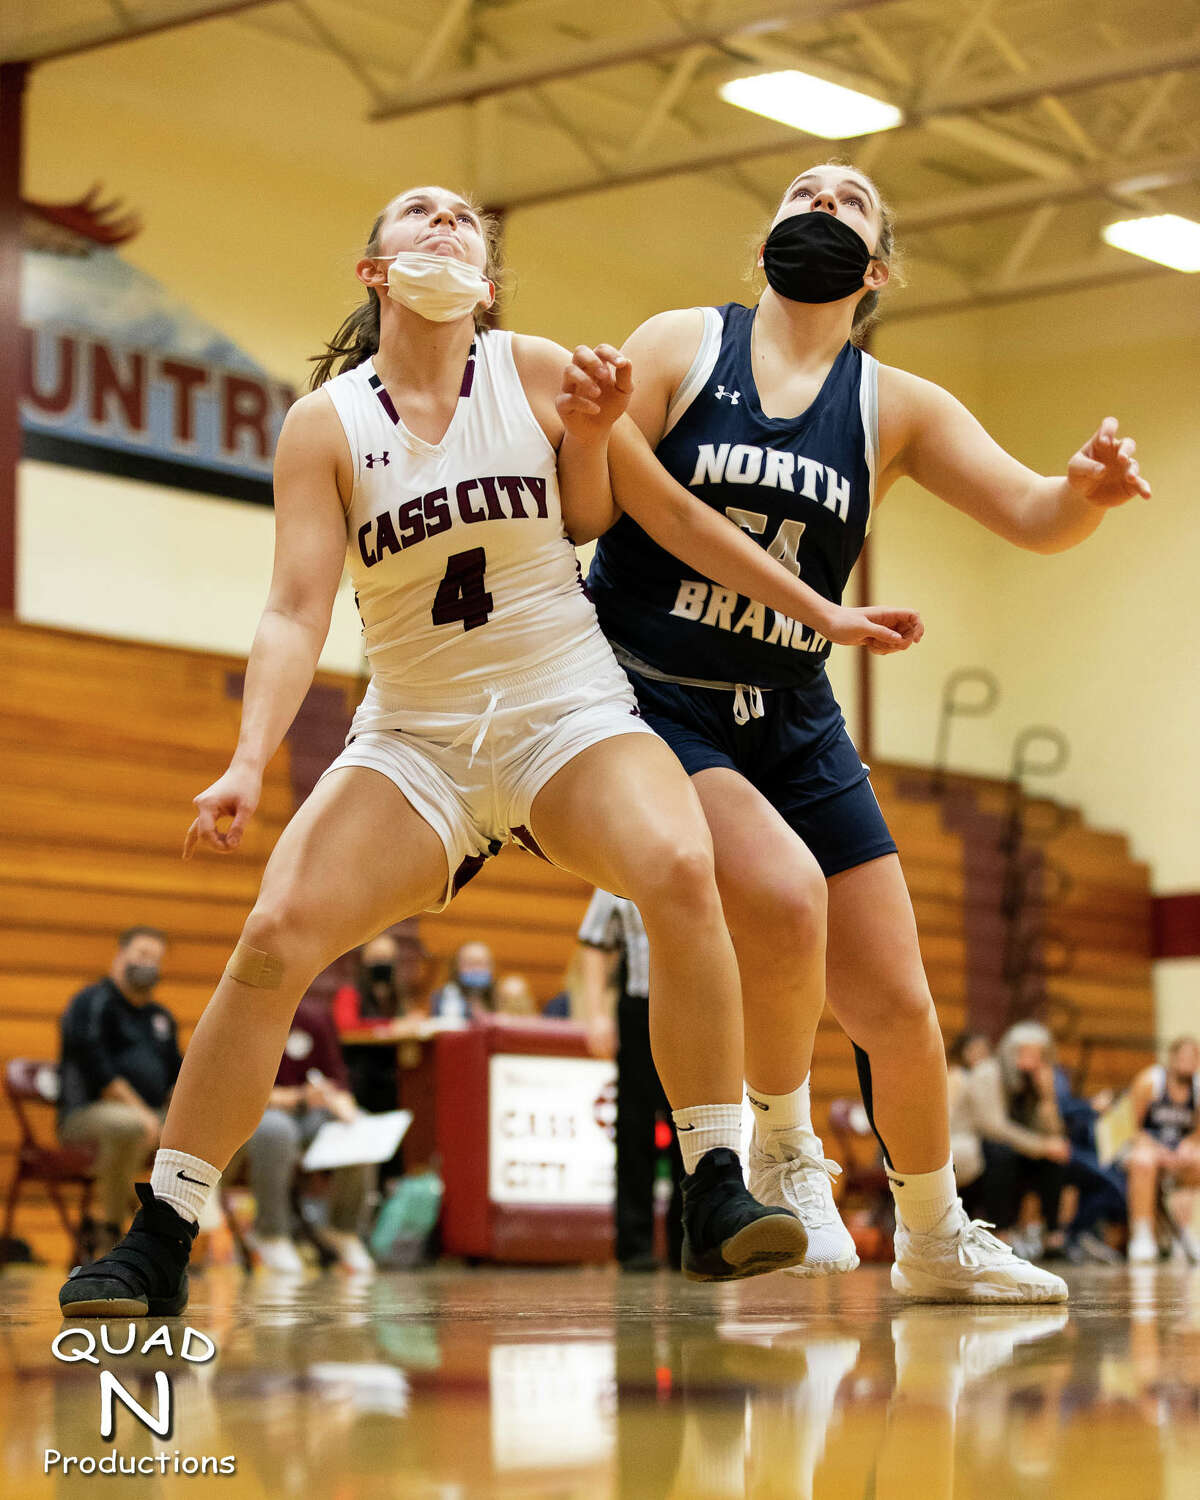 The Cass City girls basketball team opened the season at home on Monday night, falling to the North Branch Broncos, 54-49.